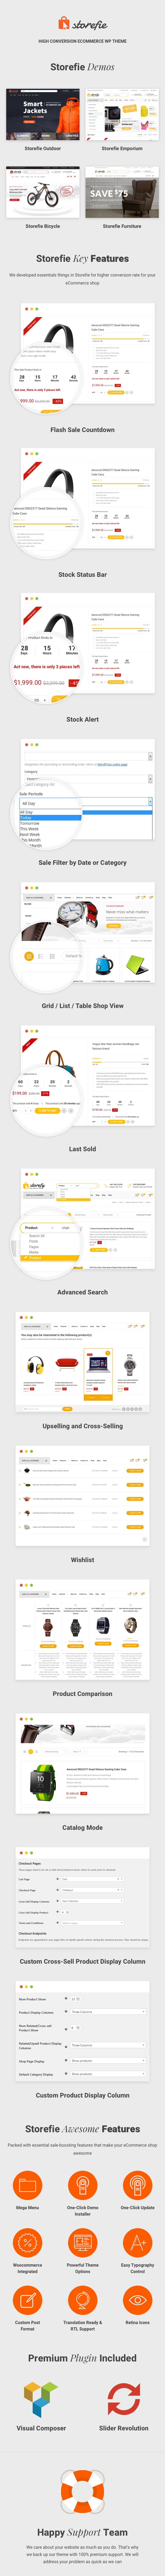 Storefie - High Conversion eCommerce WordPress Theme - 1